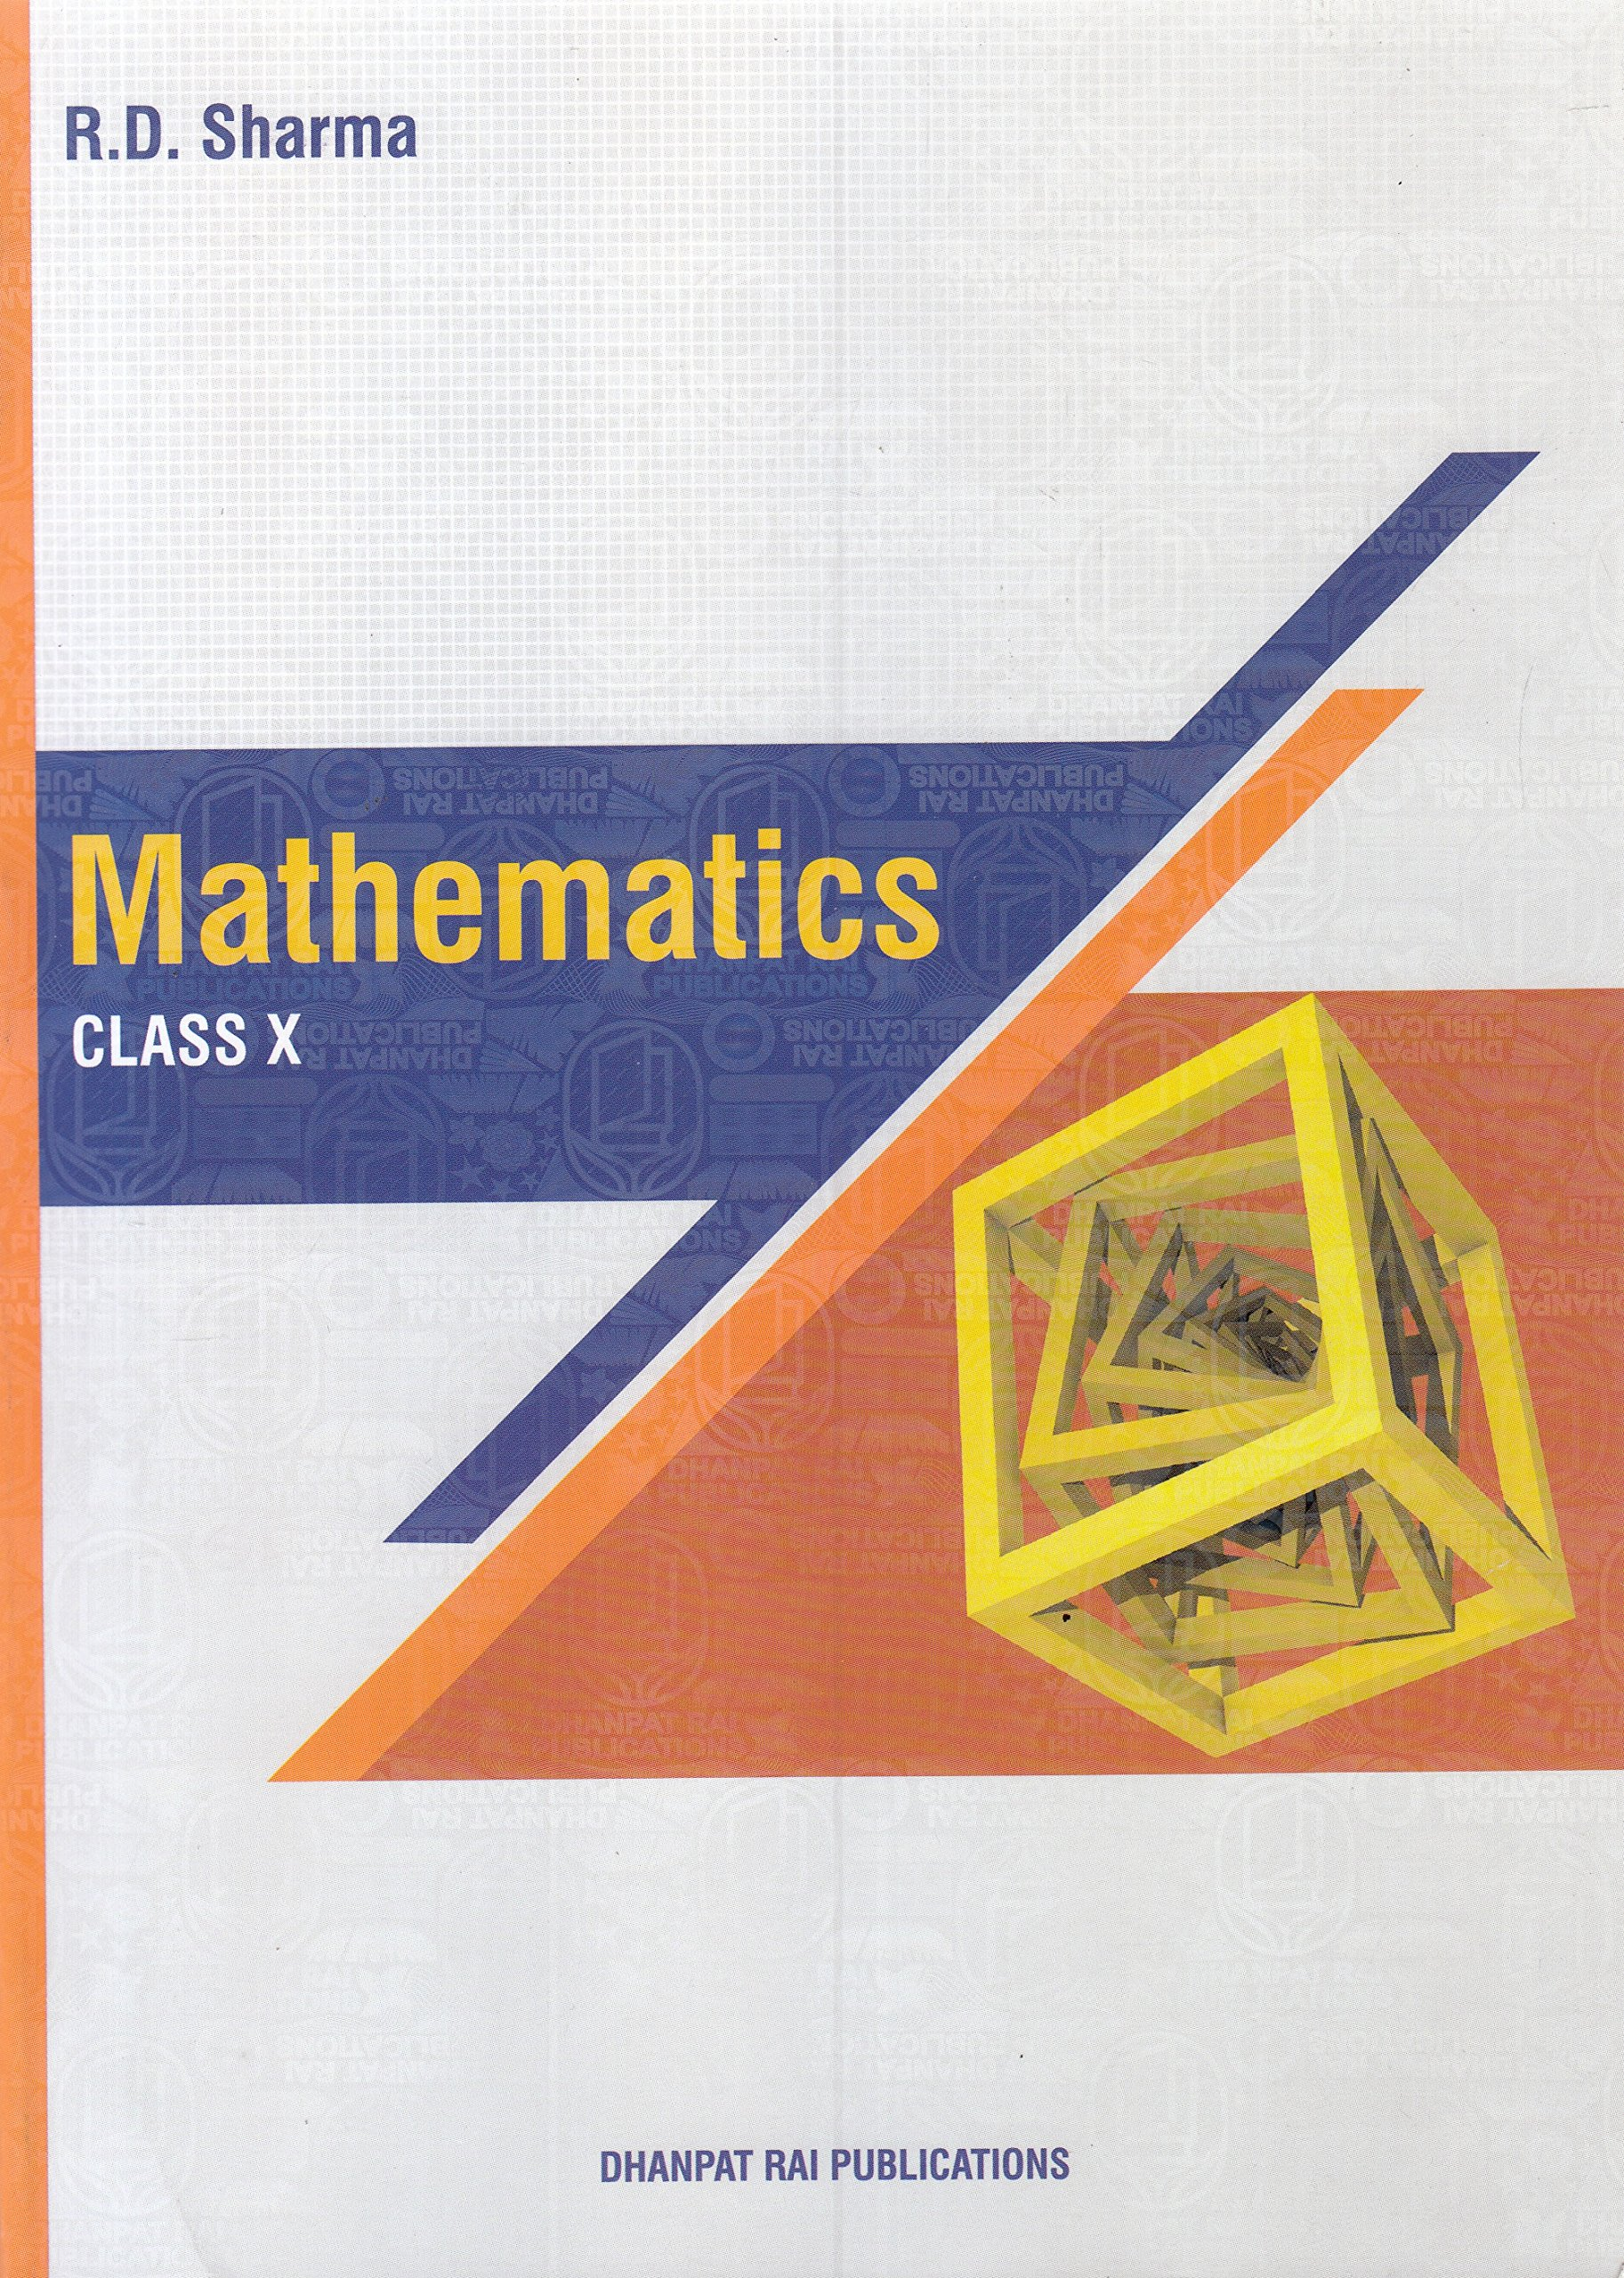 Mathematics for Class 10 by R D Sharma 2018-19 Session